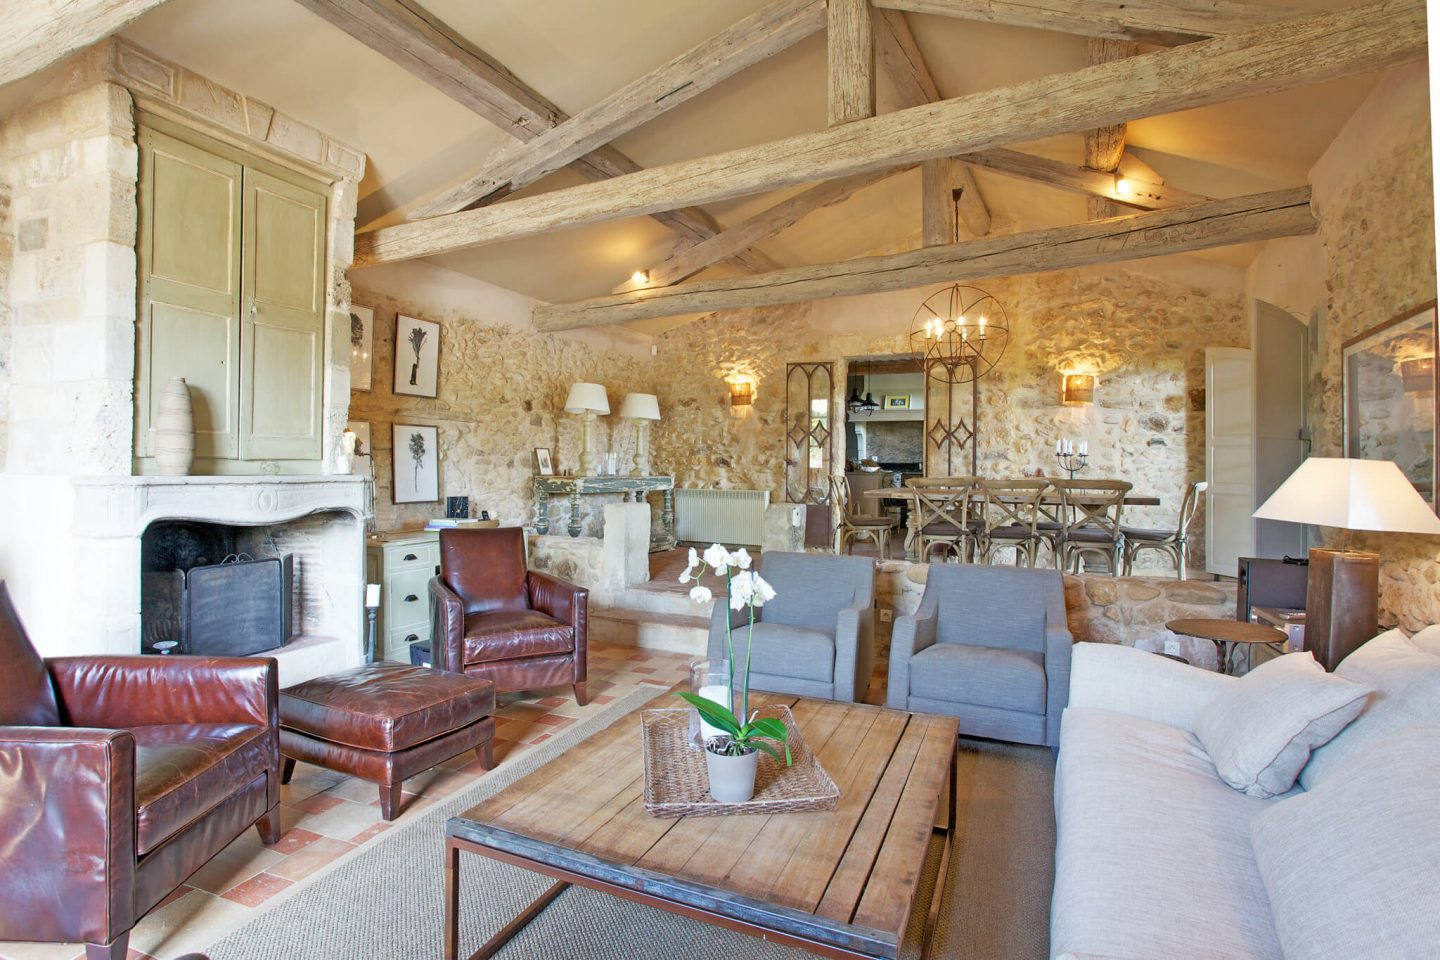 Come discover rustic elegance, ancient stone, and beautiful rugged beams within a Provencal villa - then stay for the paint color and decor Ideas! #frenchcountry #oldworld #interiordesign #provence